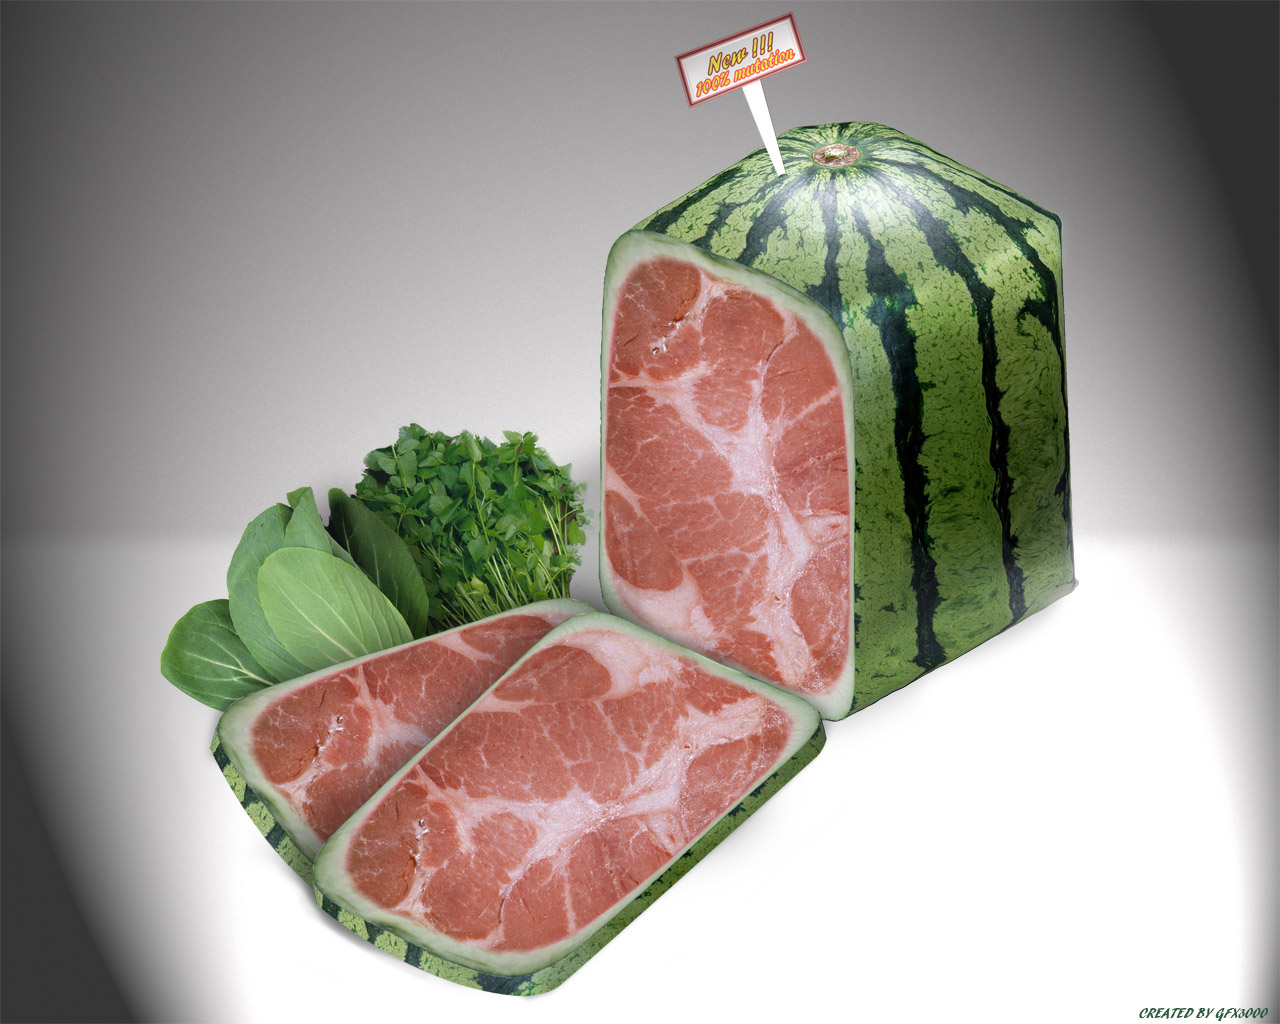 Mutation by gfx3000